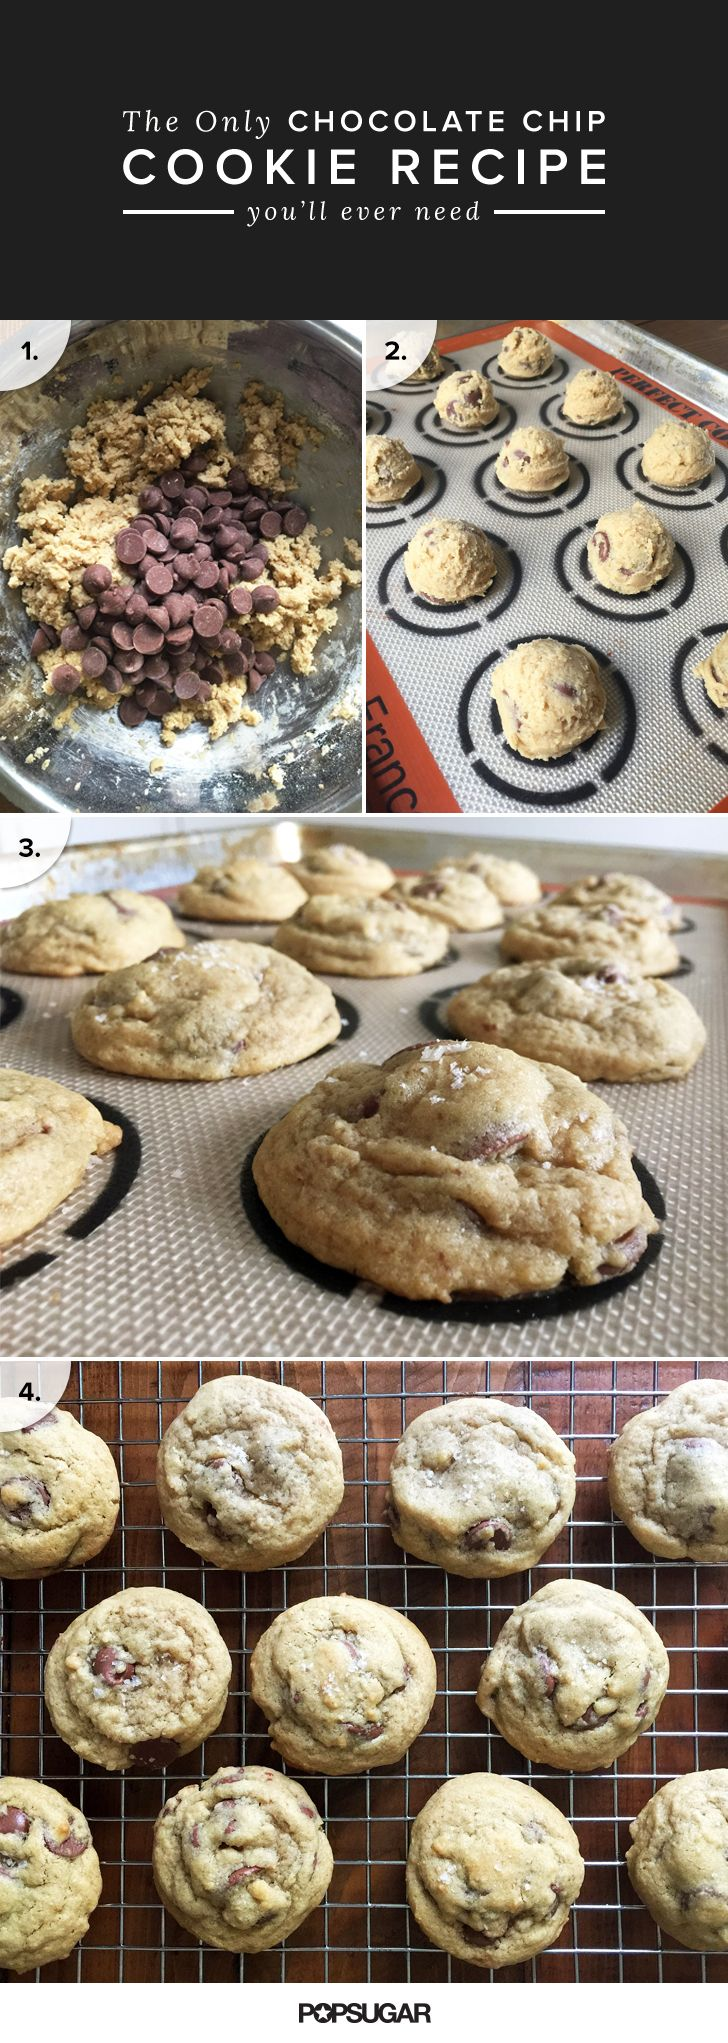 This is a foolproof recipe for the ultimate chocolate chip cookies — even a baking novice can master it!